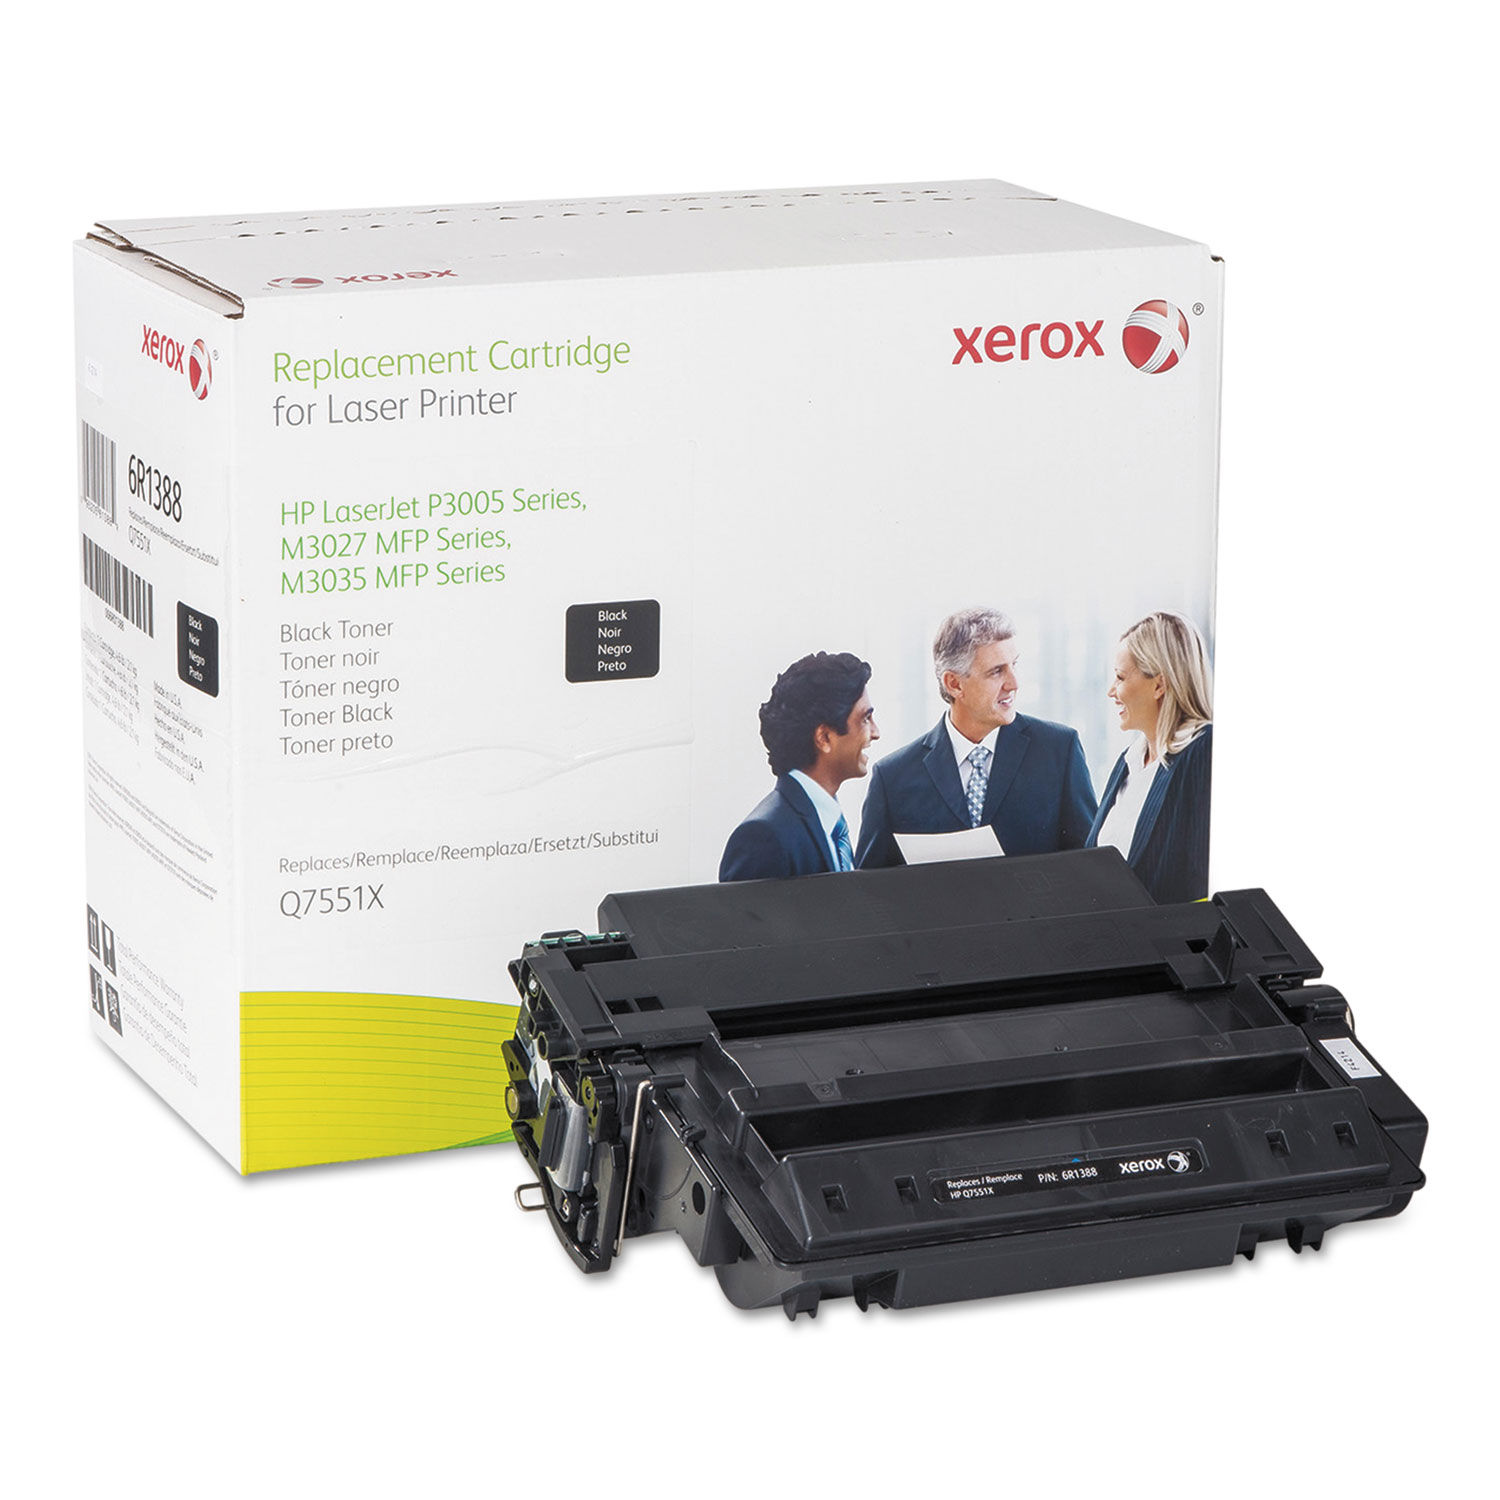 6PK High Yield Q7551X 51X Black Toner Cartridge For HP LaserJet M3035xs MFP